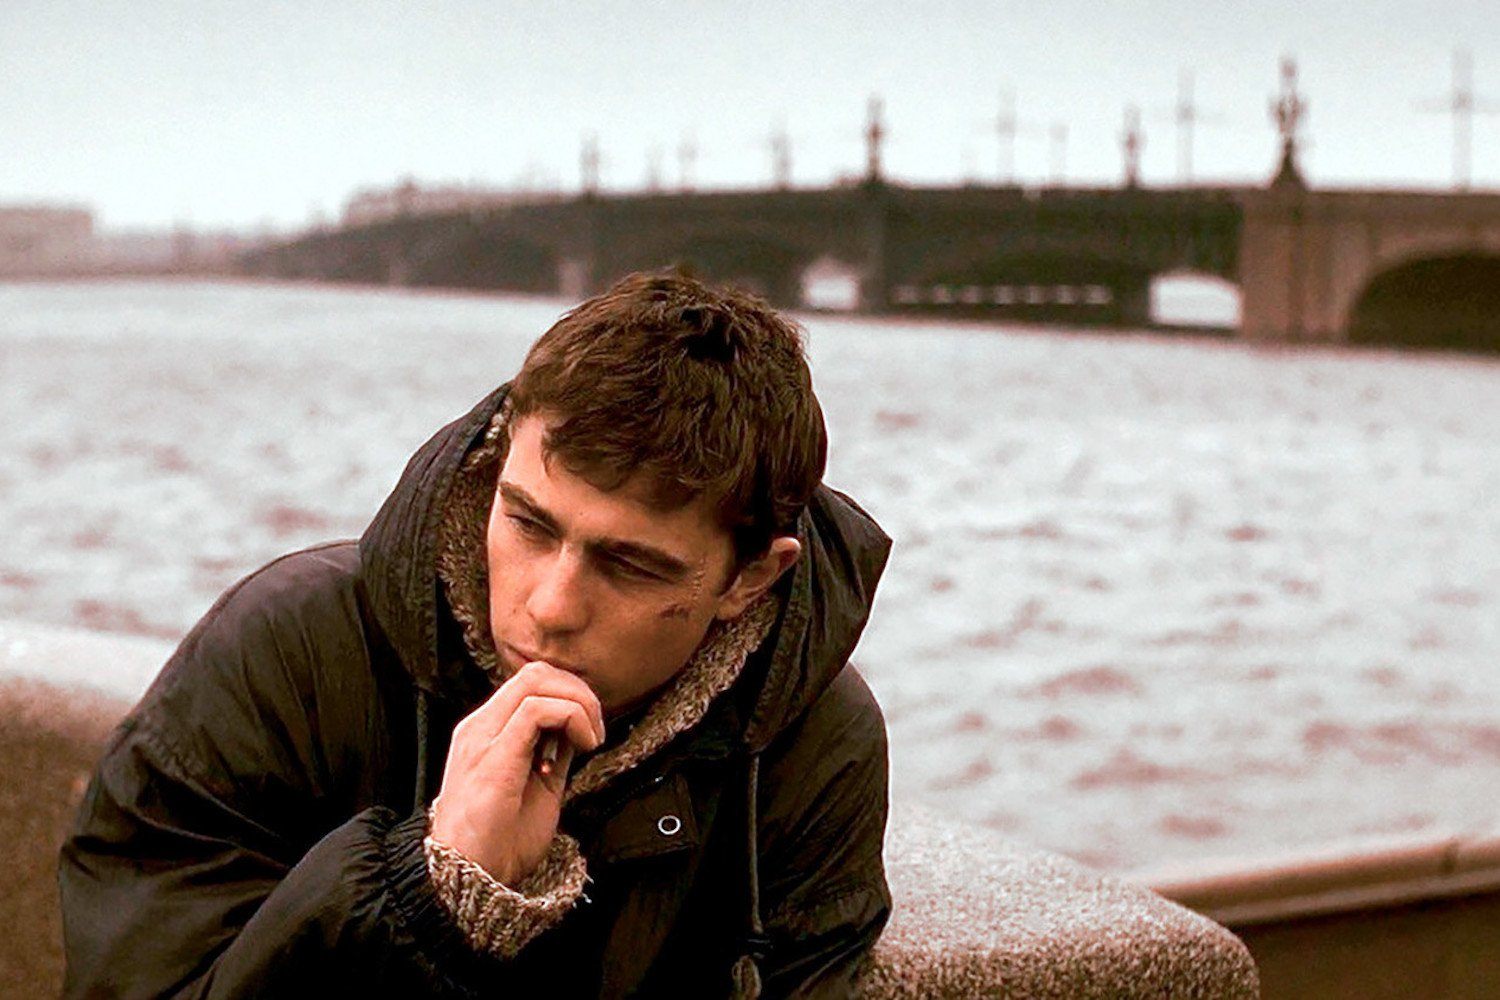 Balabanov's ganster film 'Brat' shook, explained and defined 90s Russia | Film of the Week